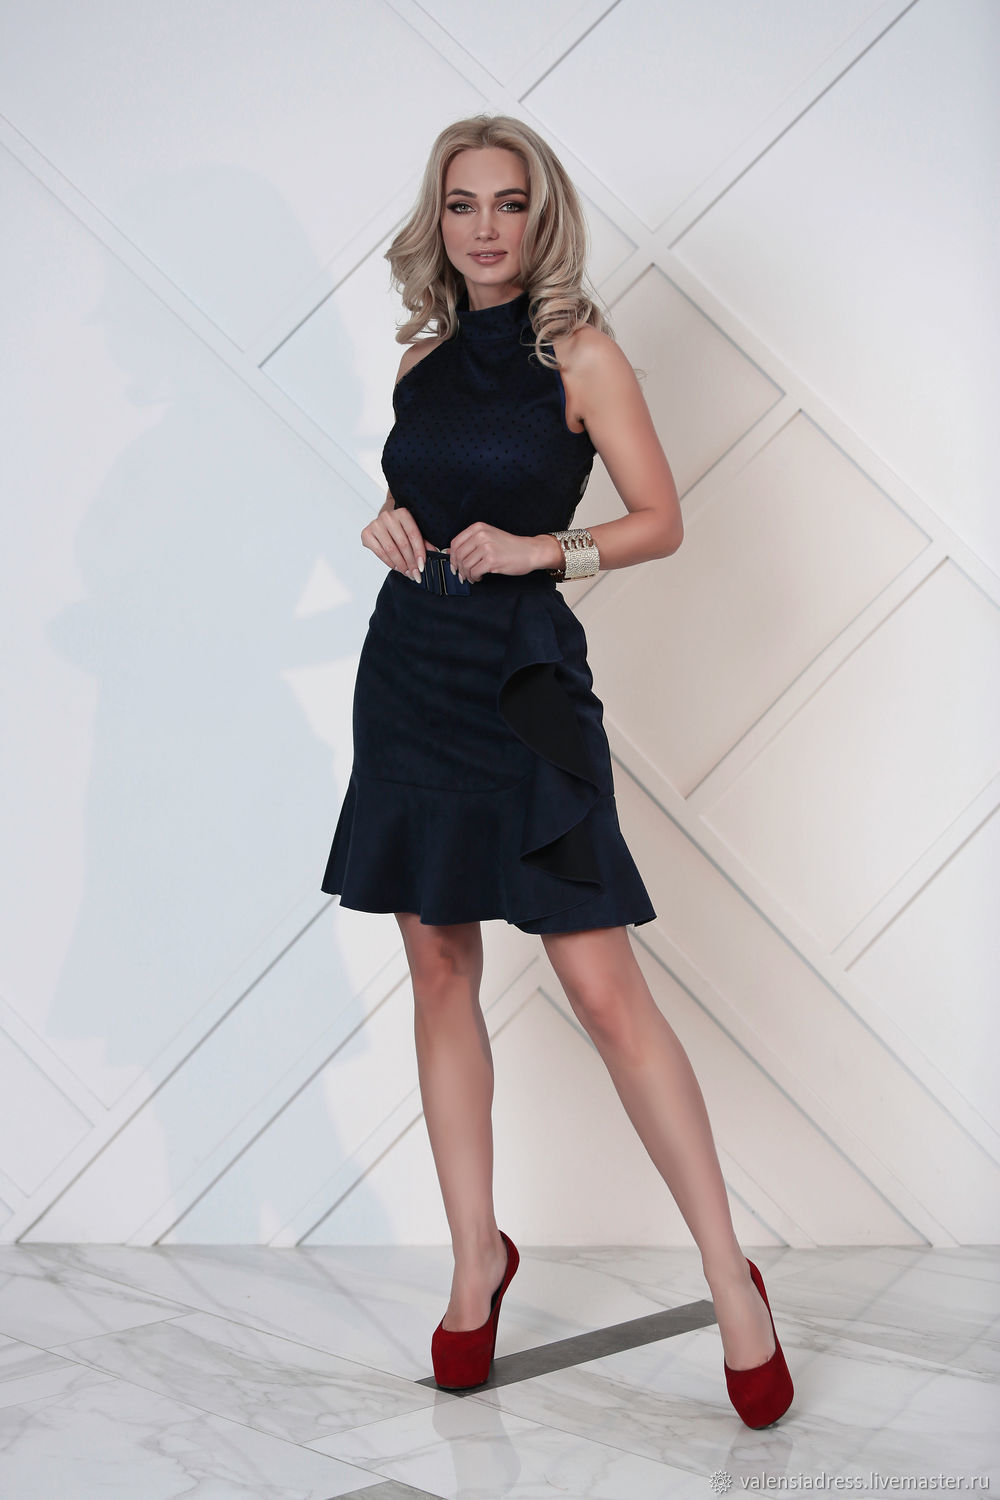 Skirt: the skirt is made of eco-suede with ruffles, Skirts, St. Petersburg,  Фото №1